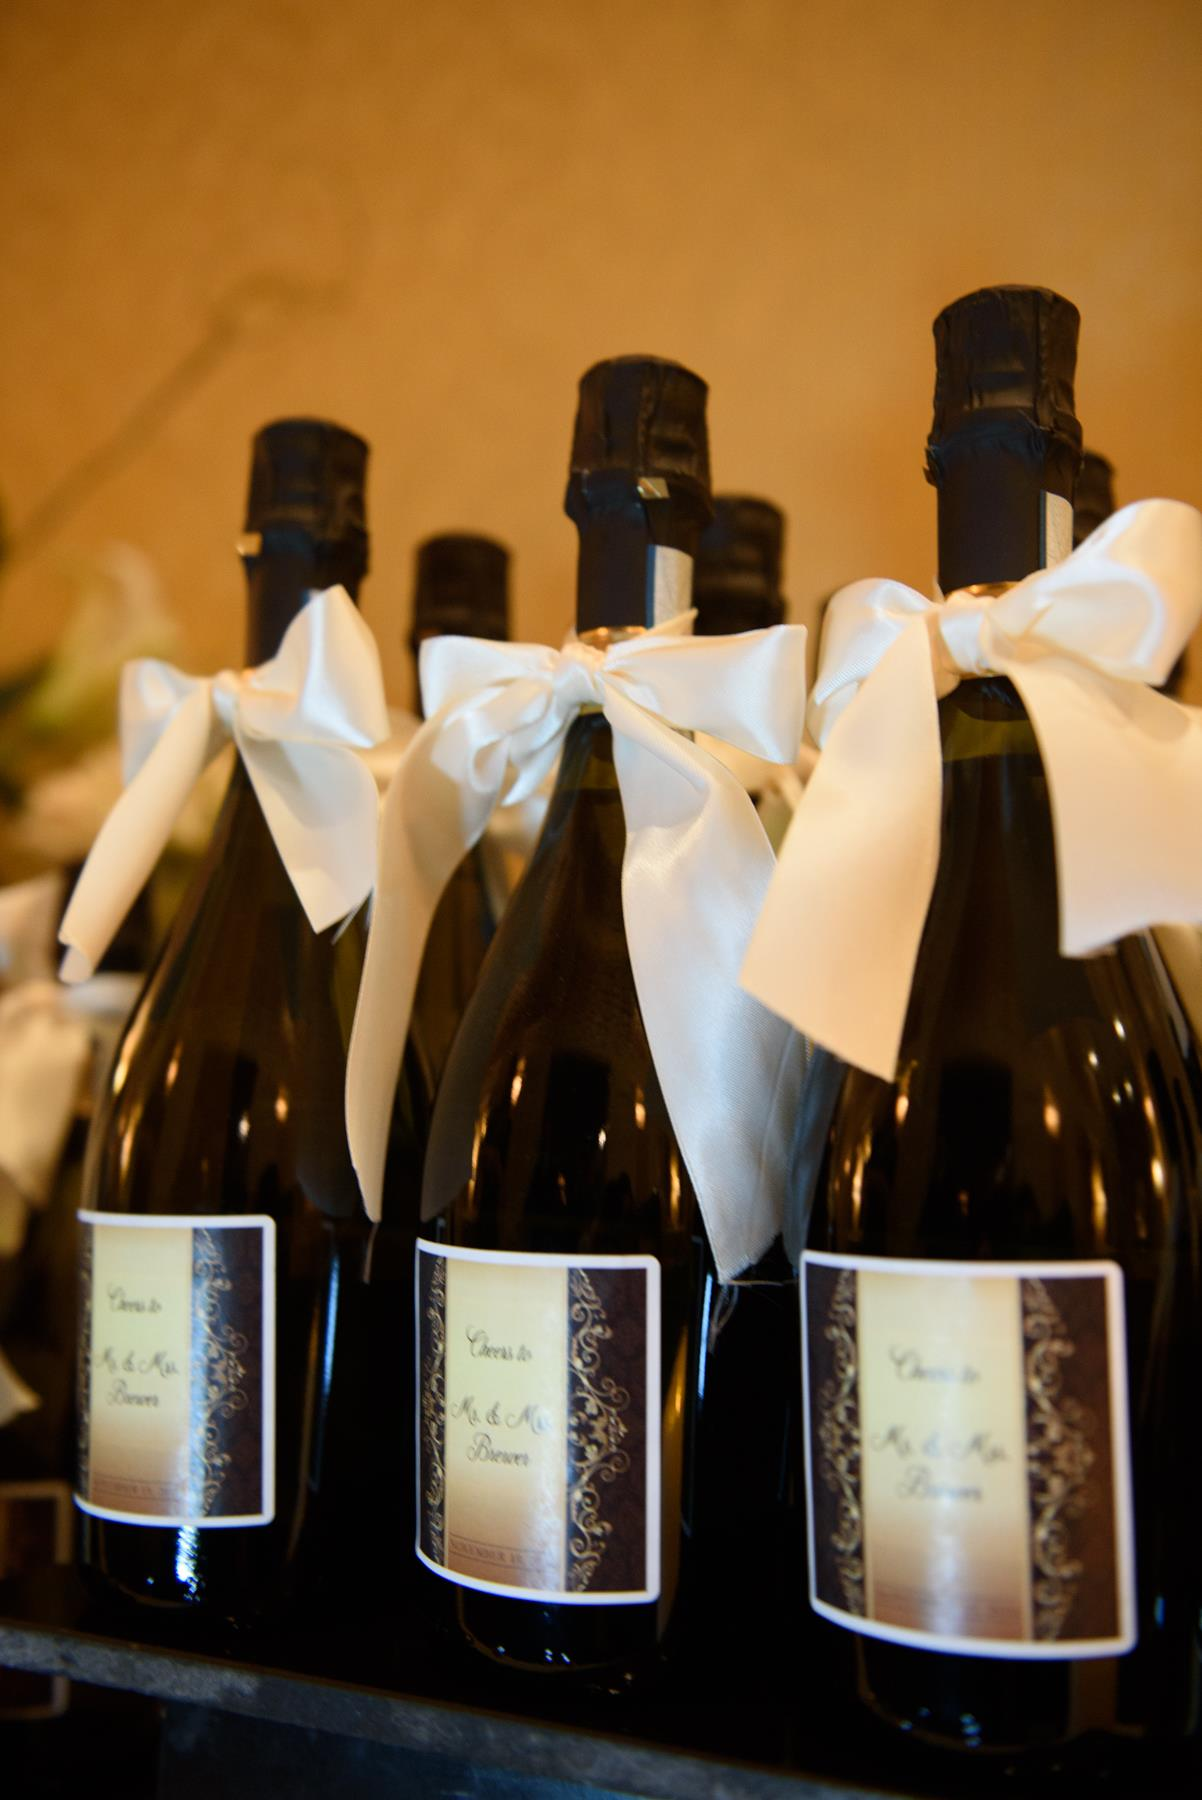 black-champagne-bottles-with-white-bows.jpg